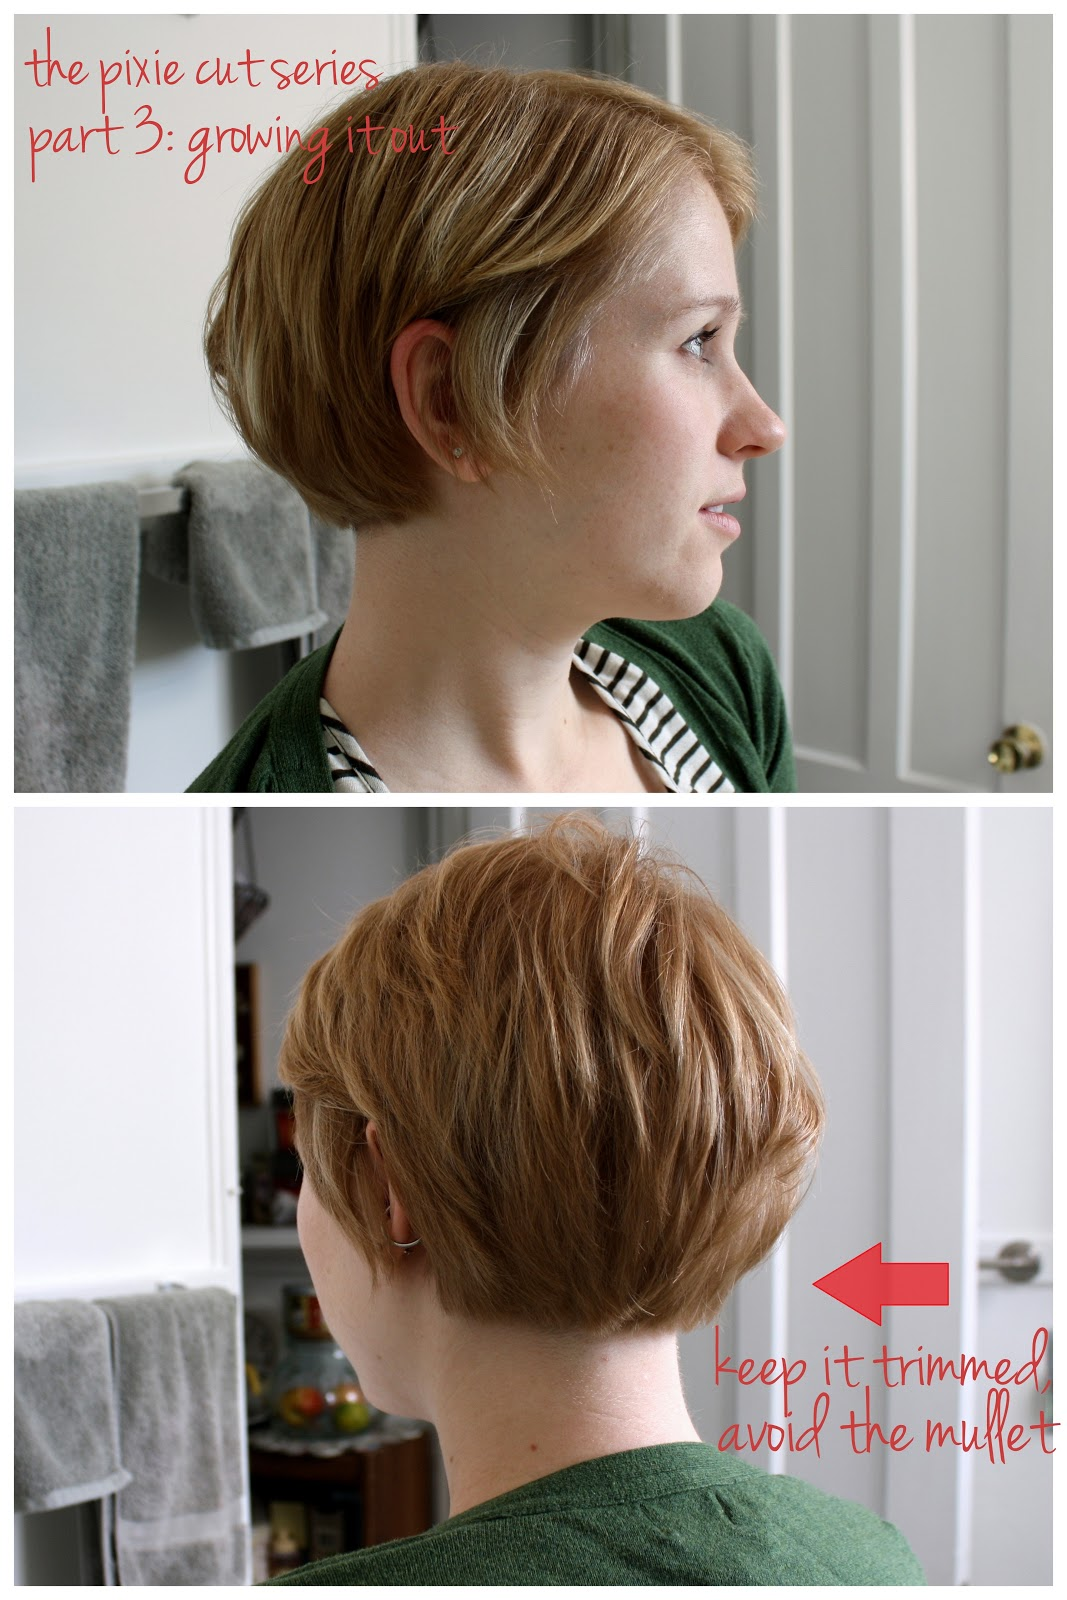 Stupendous Unspeakable Visions The Pixie Cut Series Part 3 Growing It Out Short Hairstyles Gunalazisus